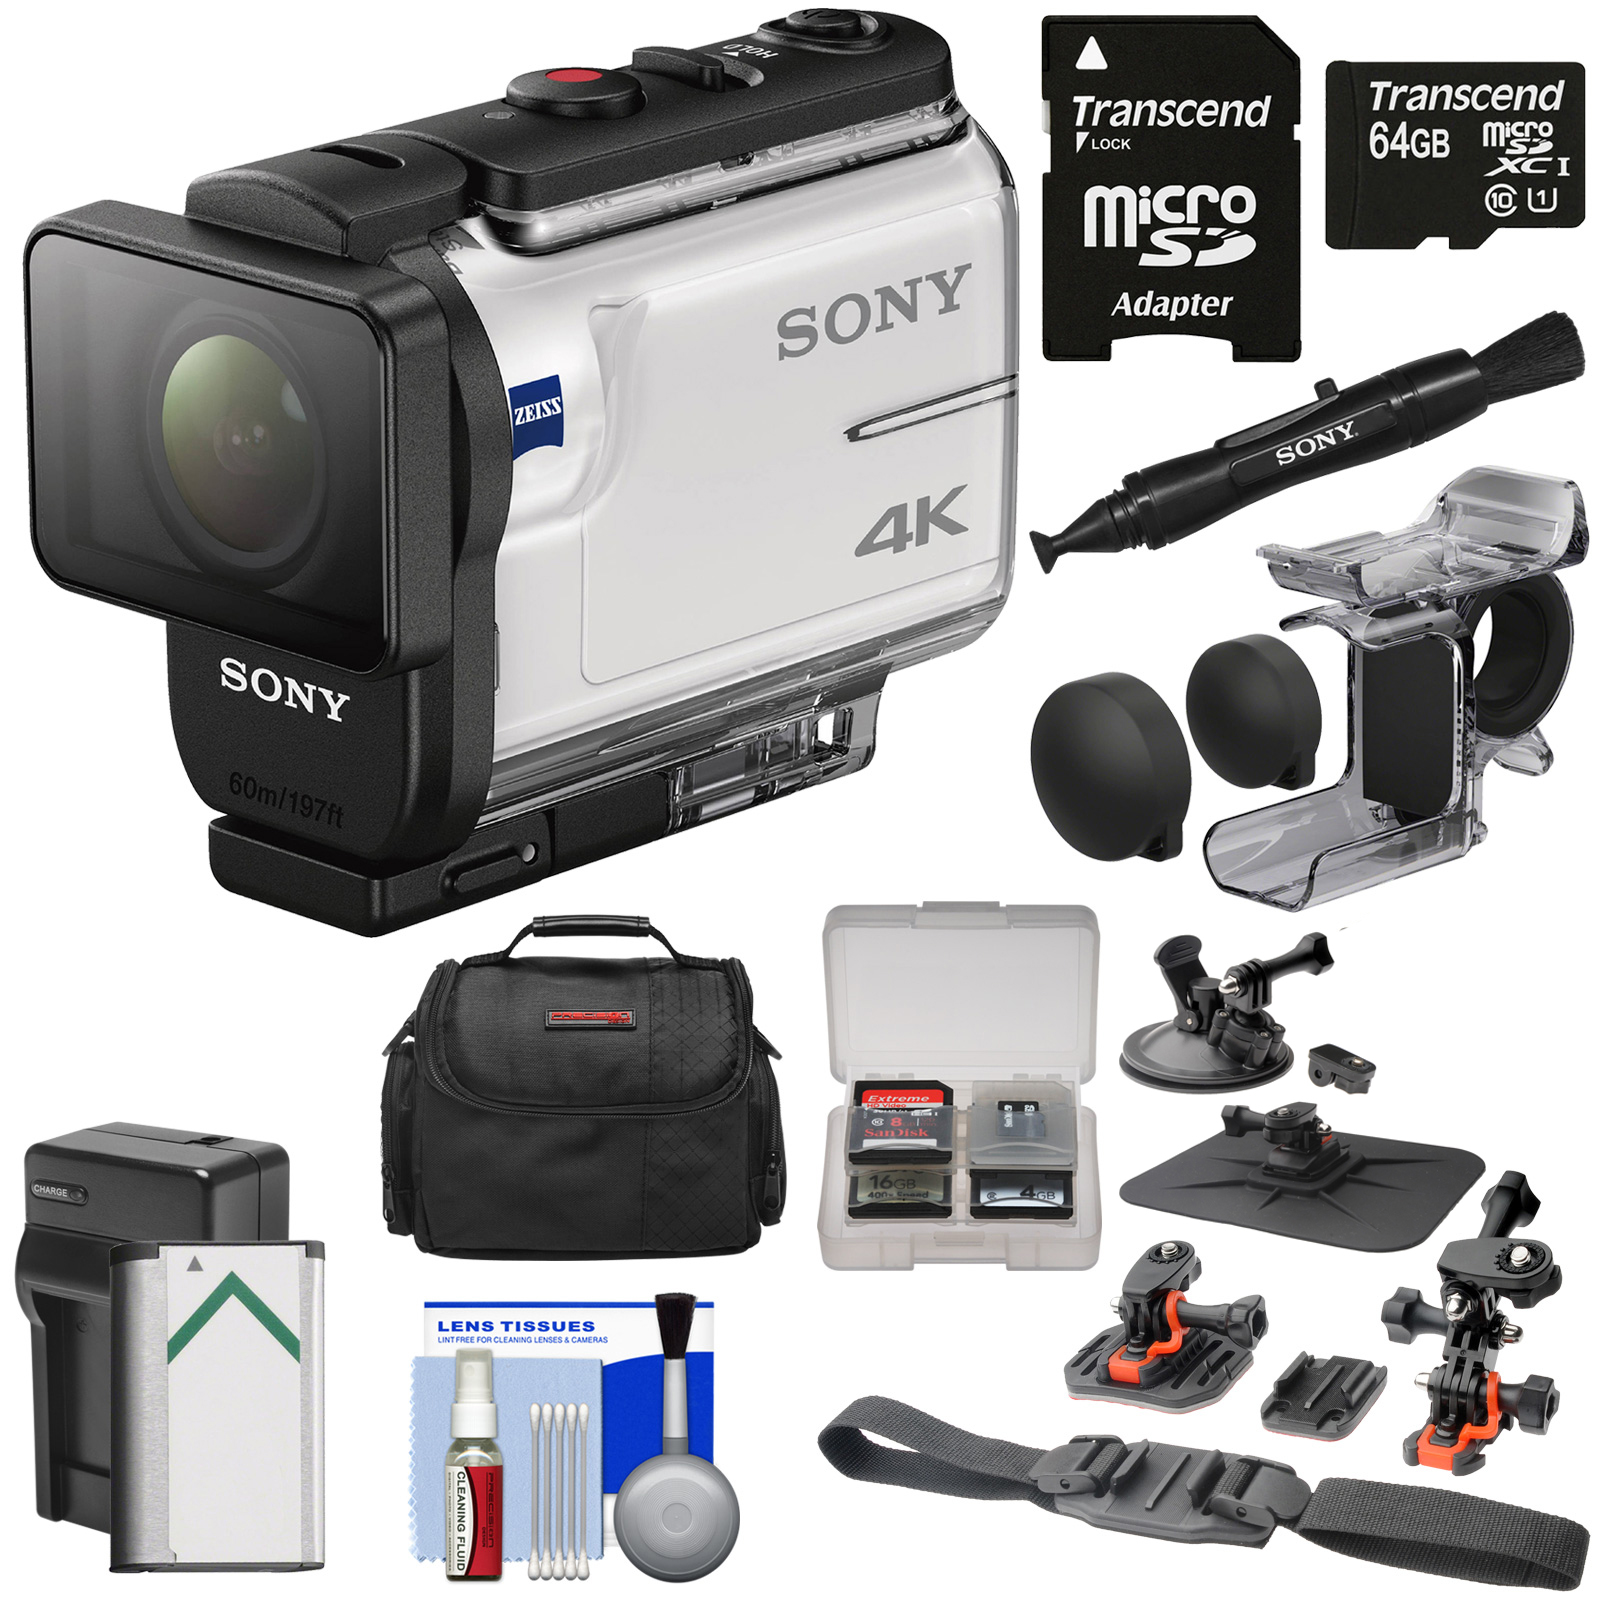 Sony Action Cam FDR-X3000 Wi-Fi GPS 4K HD Video Camera Camcorder with Finger Grip + Suction Cup + Helmet Mount + 64GB Card + Battery & Charger + Case + Kit